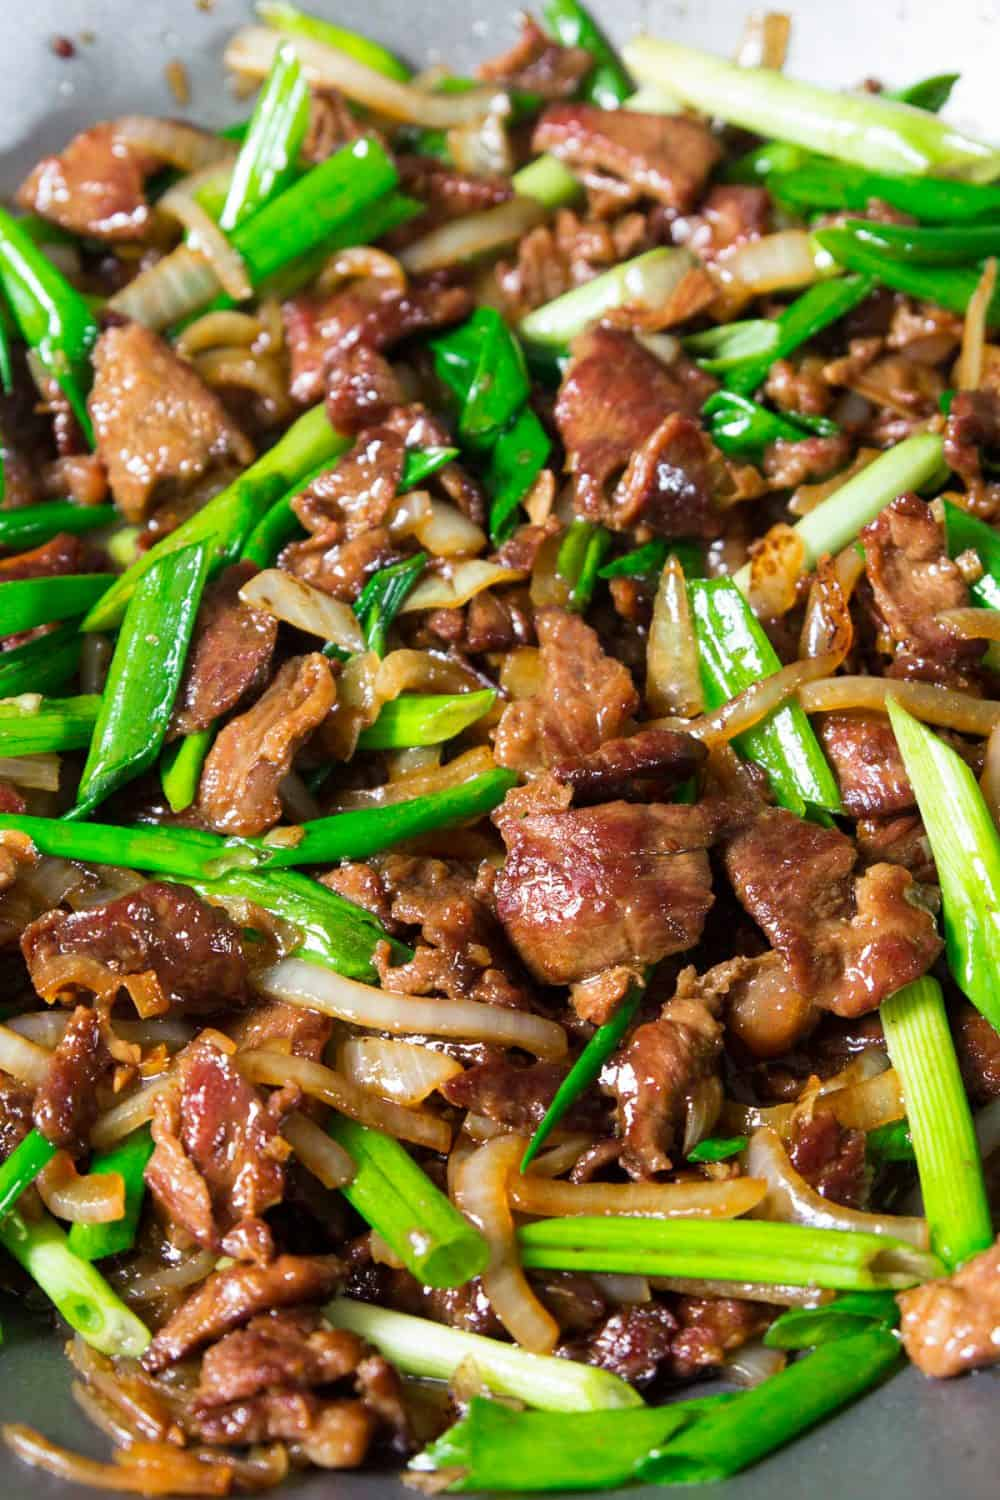 cooked beef and green onion in a wok